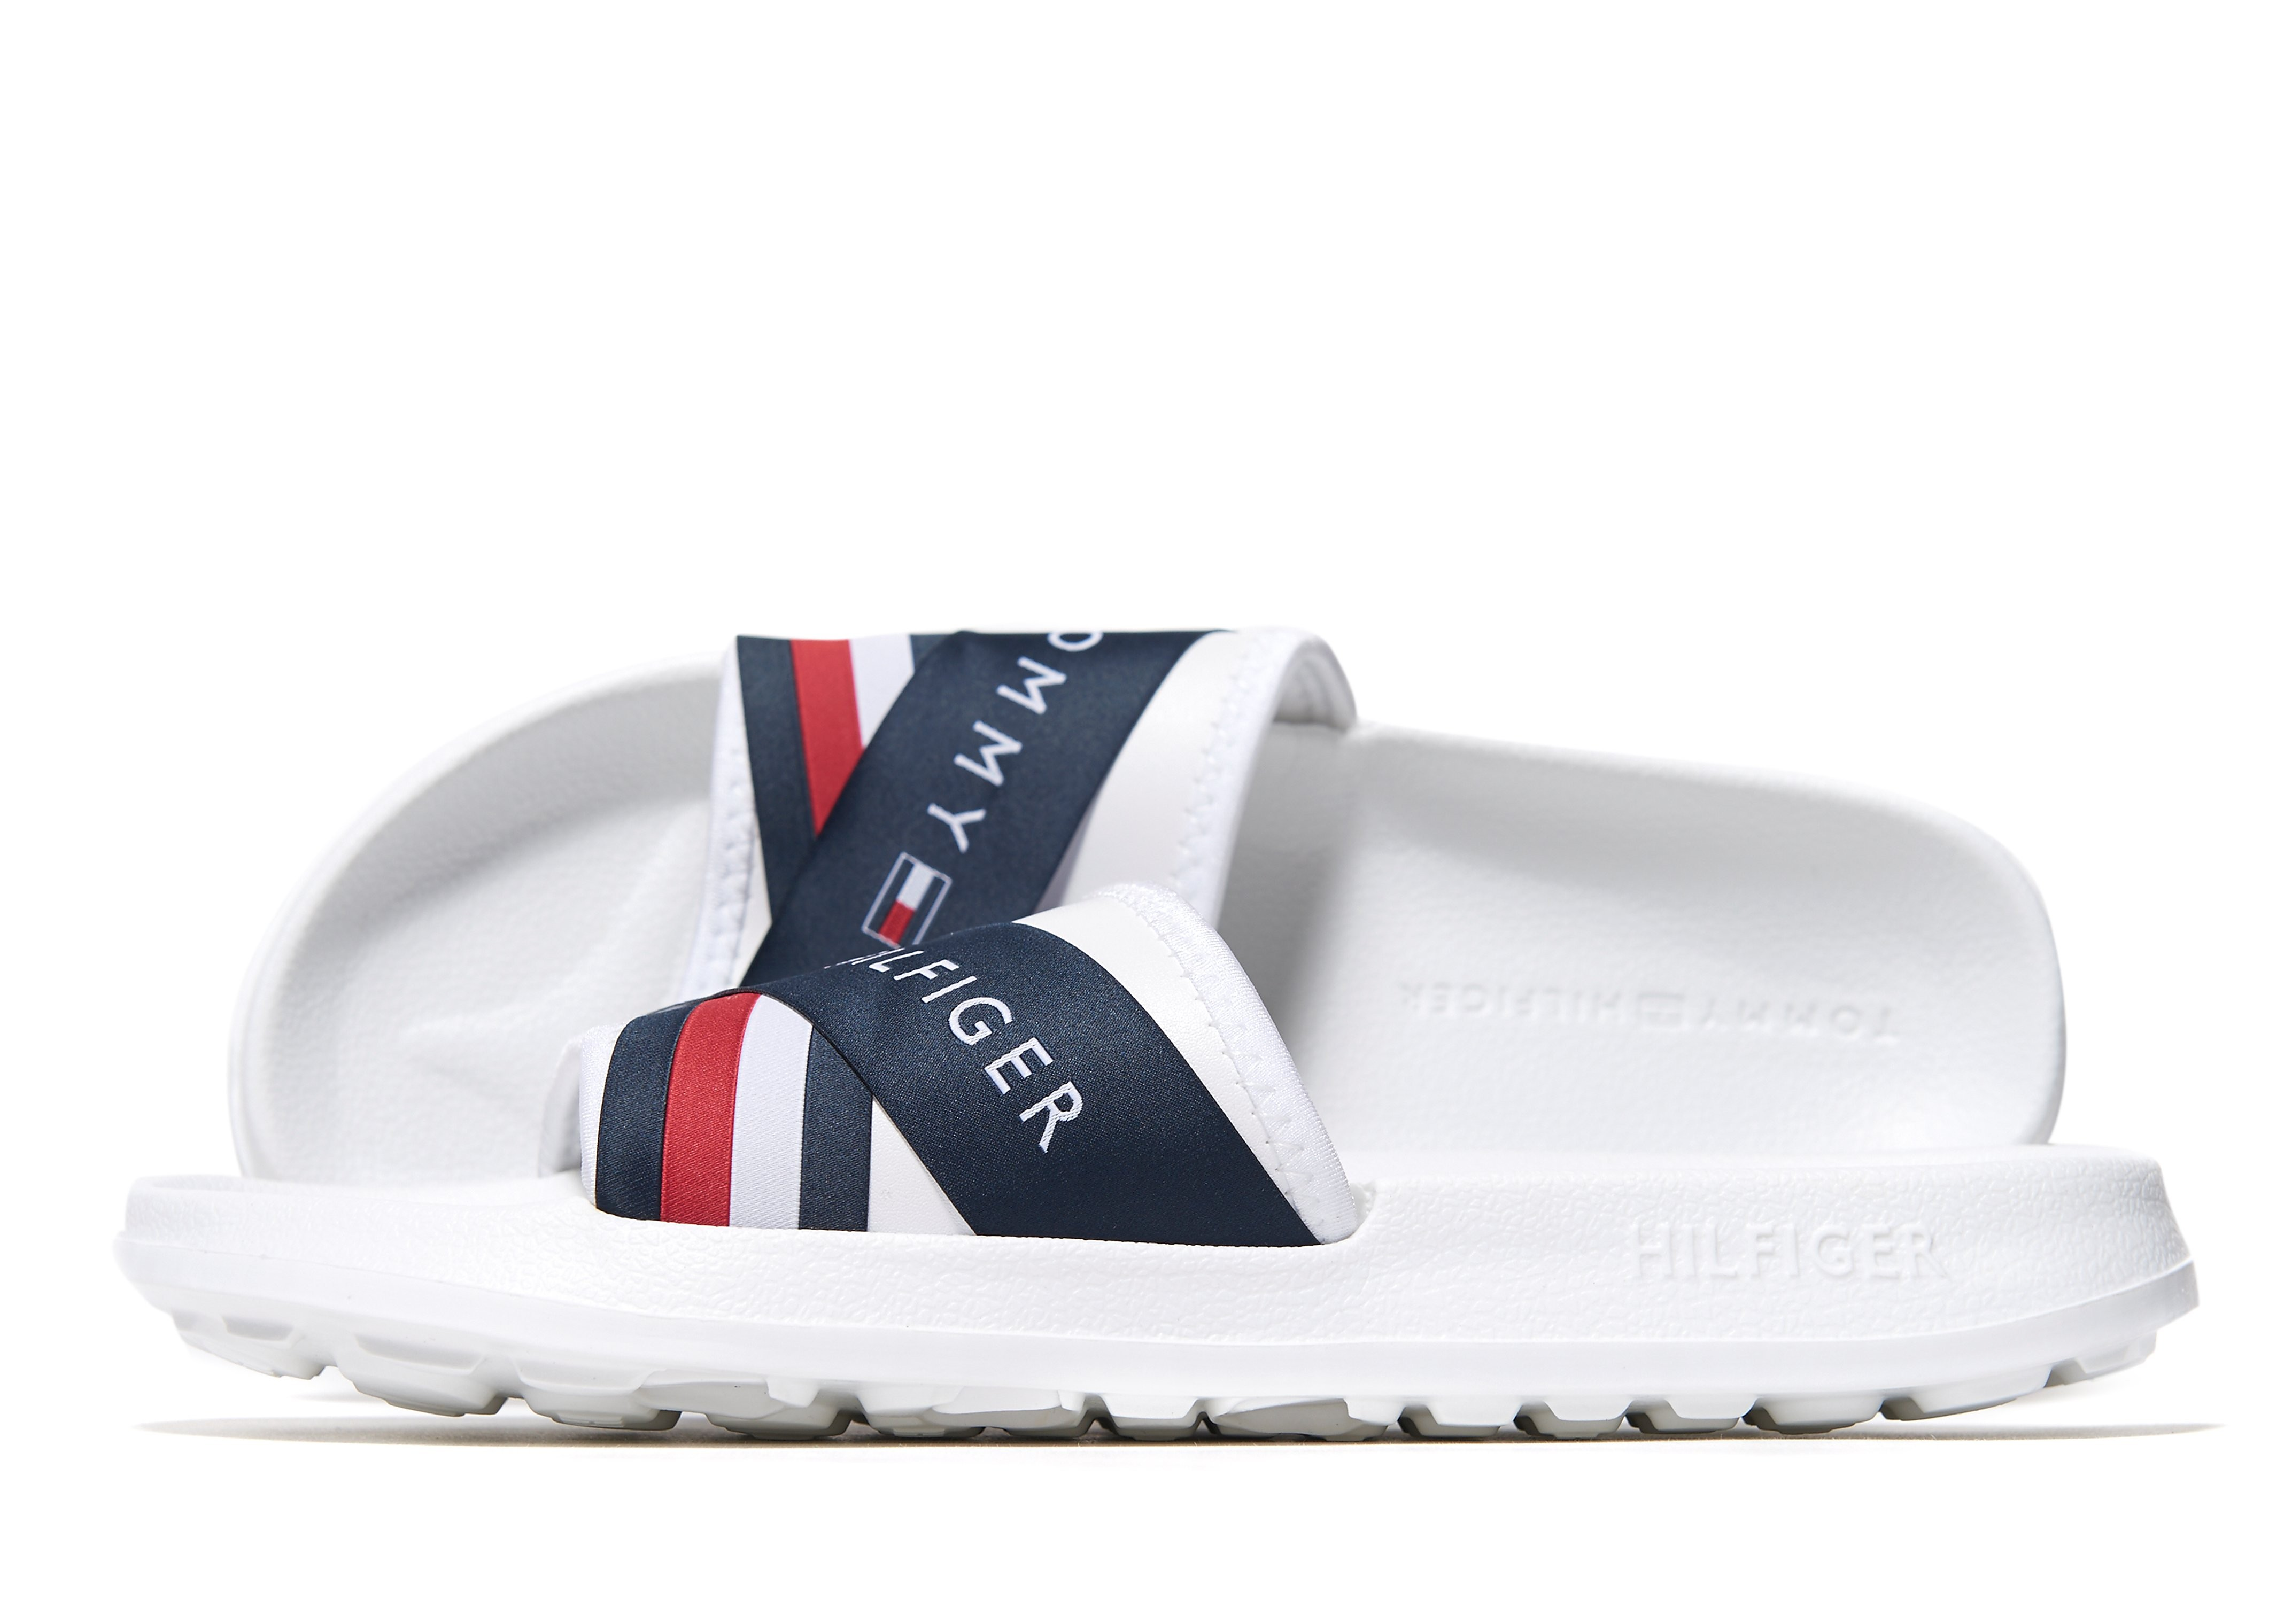 Tommy Hilfiger Splash 4D Slides